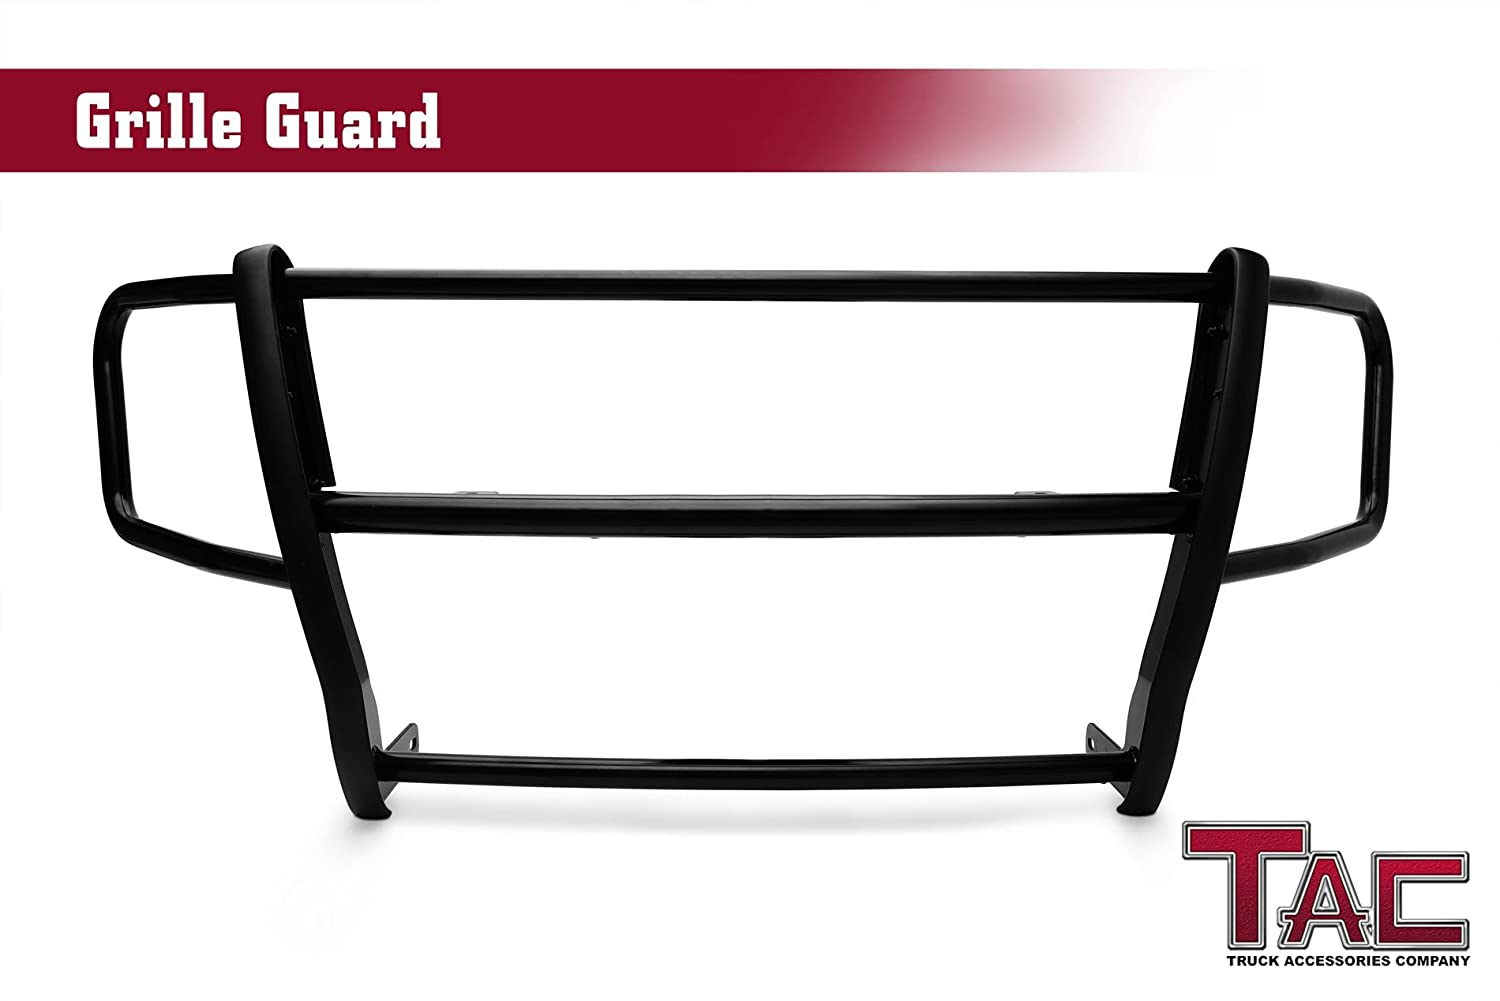 TAC Grille Guard for 2012-2018 Nissan NV 1500/2500 / 3500 Van (interfere with the front sensors) Black Front Brush Bumper Guard Grille Guard Push Guard Bull Bar Truck Pickup